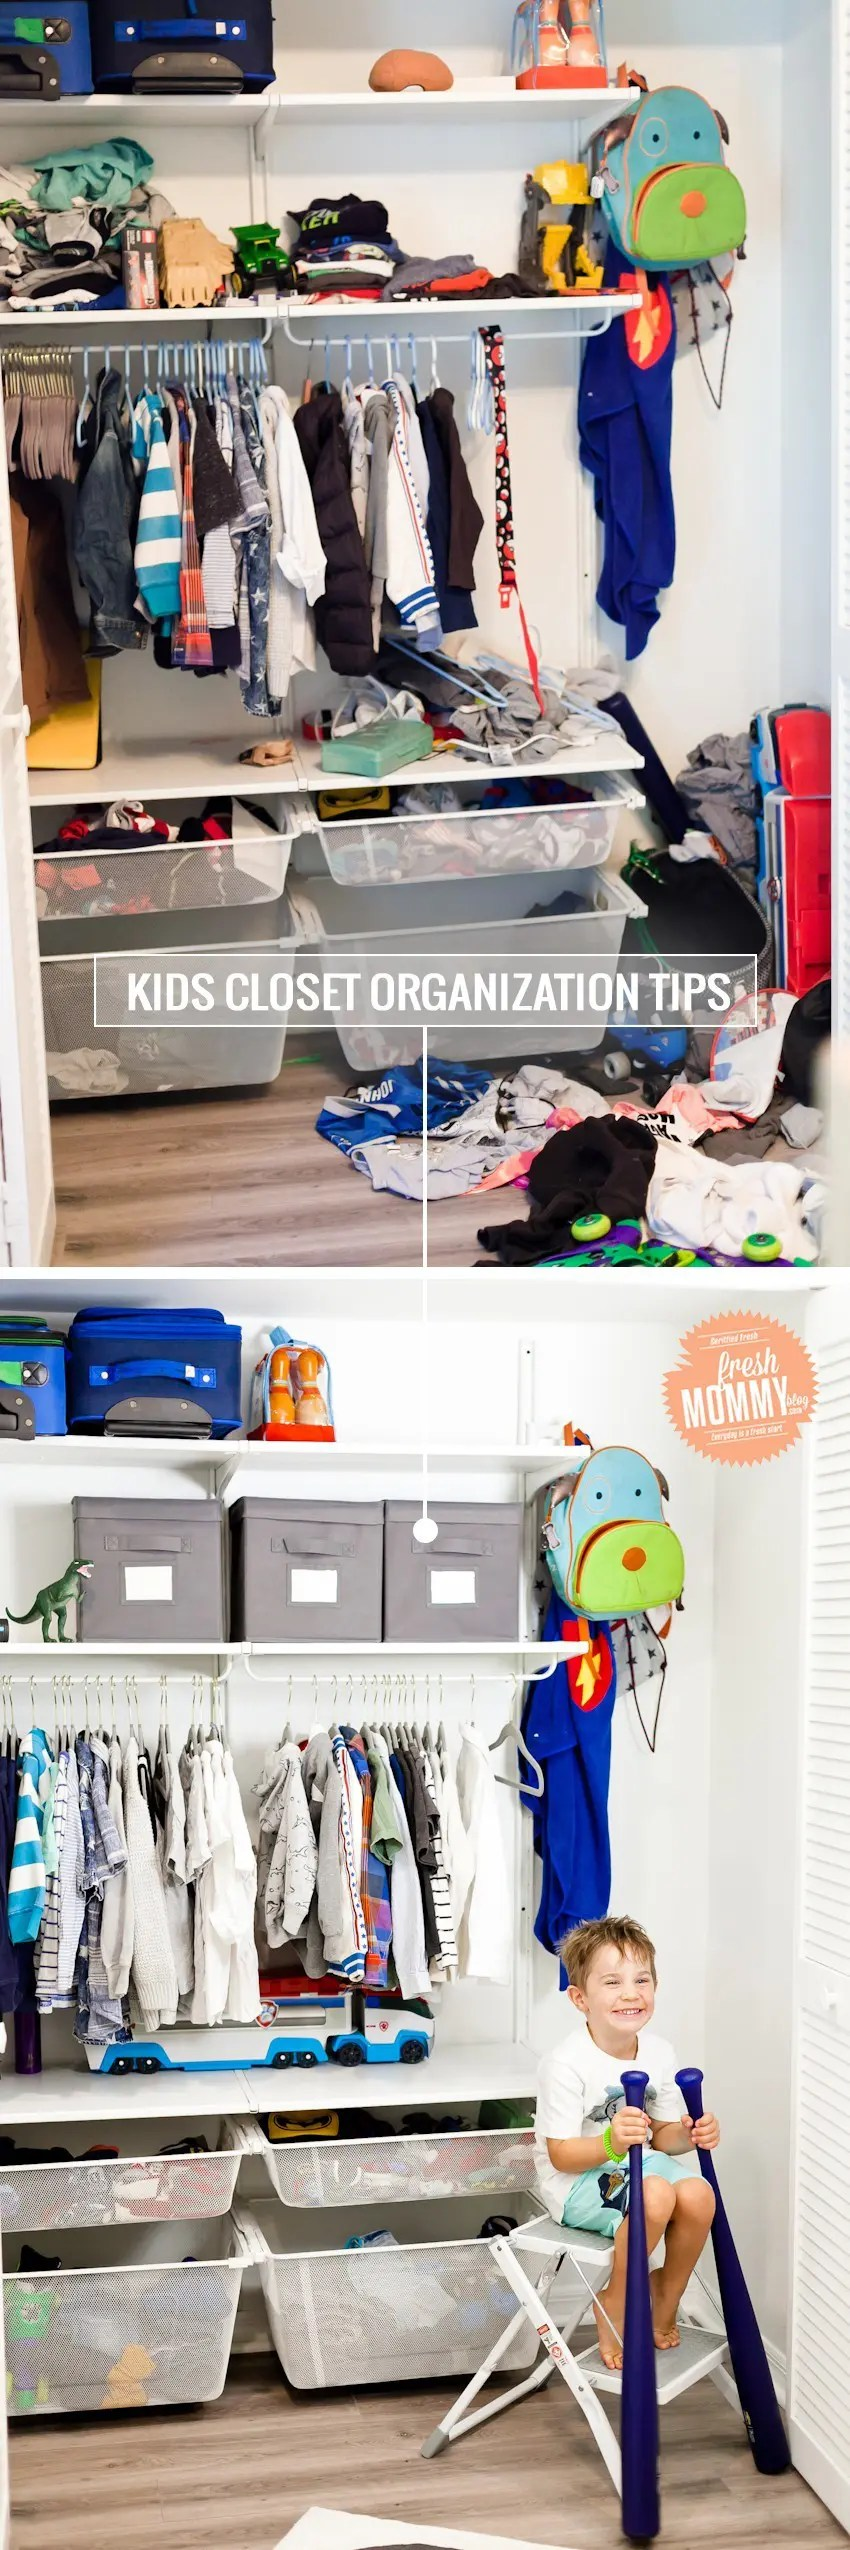 Kids Closet Organization Tips by popular Florida mom blogger Tabitha Blue of Fresh Mommy Blog. See the full before and after!